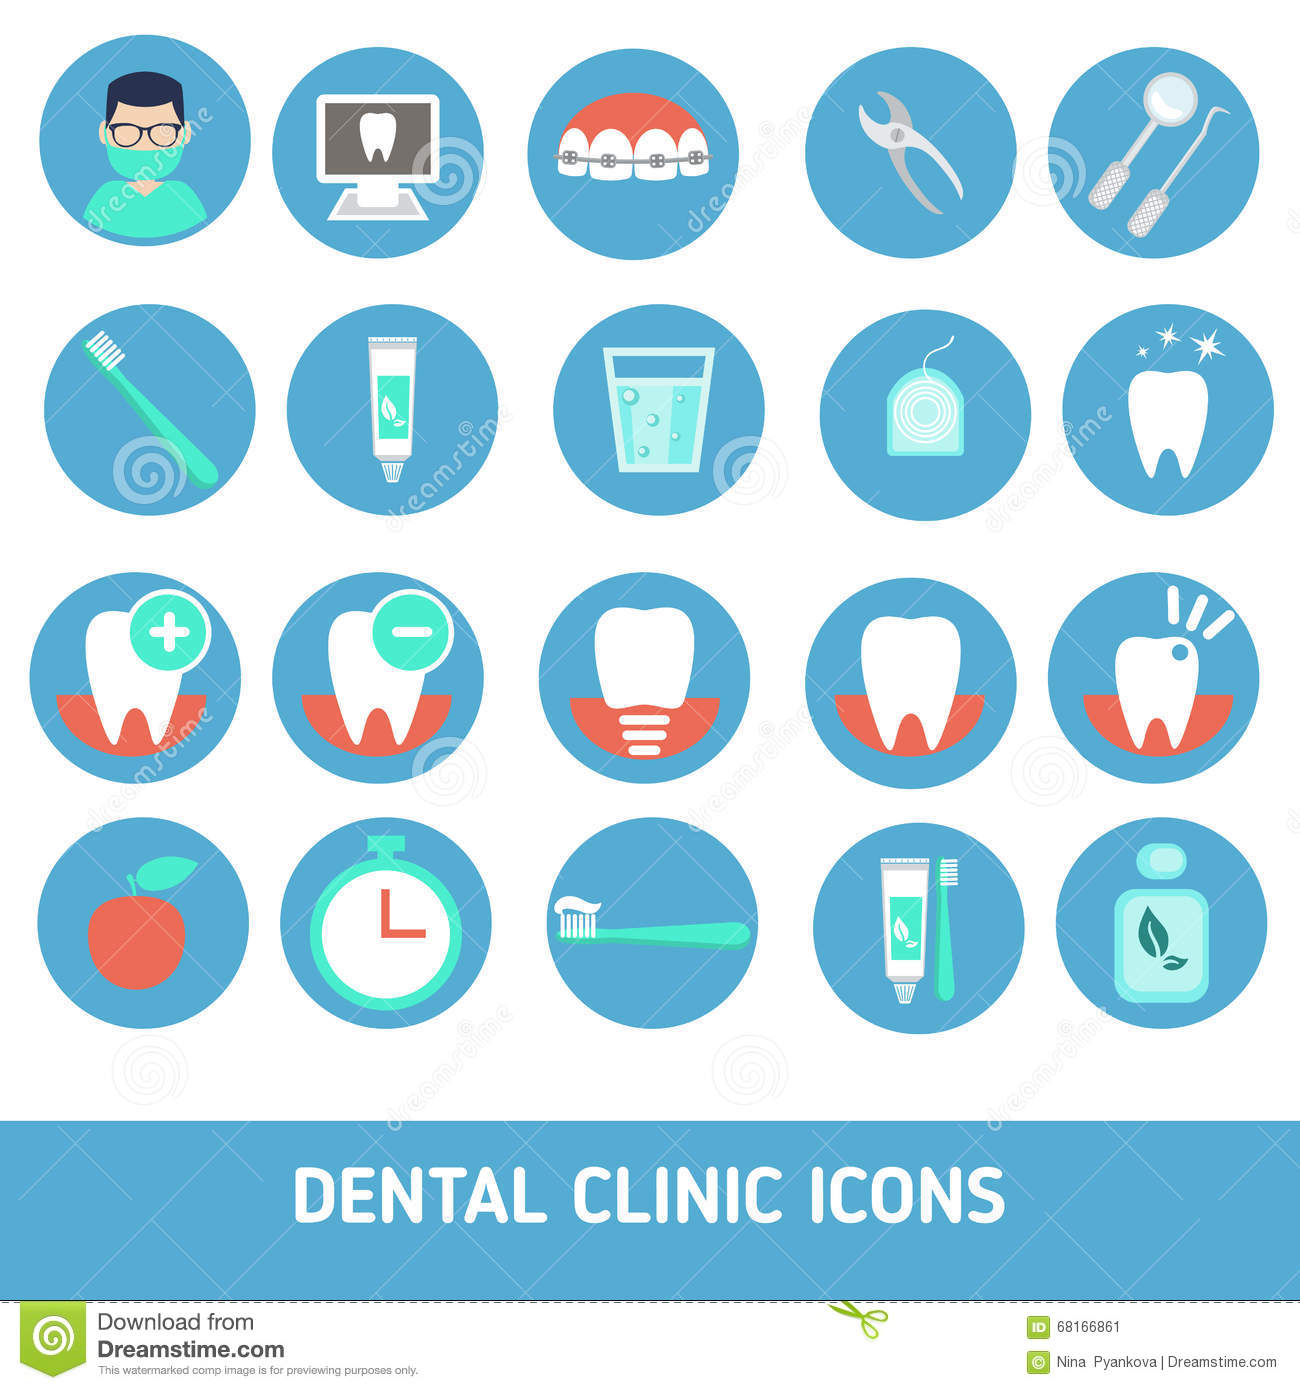 set-dental-clinic-icons-services-stomatology-dentistry-orthodontics-oral-health-care-etc-68166861.jpg